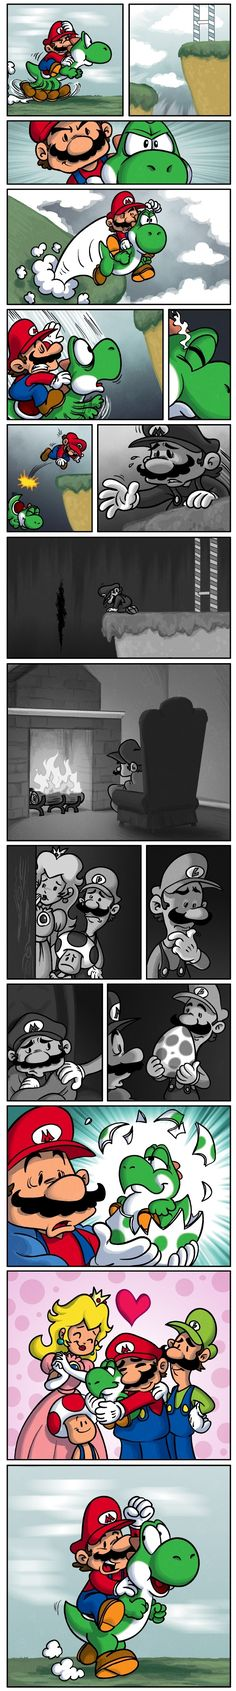 A Yoshi Story // funny pictures - funny photos - funny images - funny pics - funny quotes - #lol #humor #funnypictures